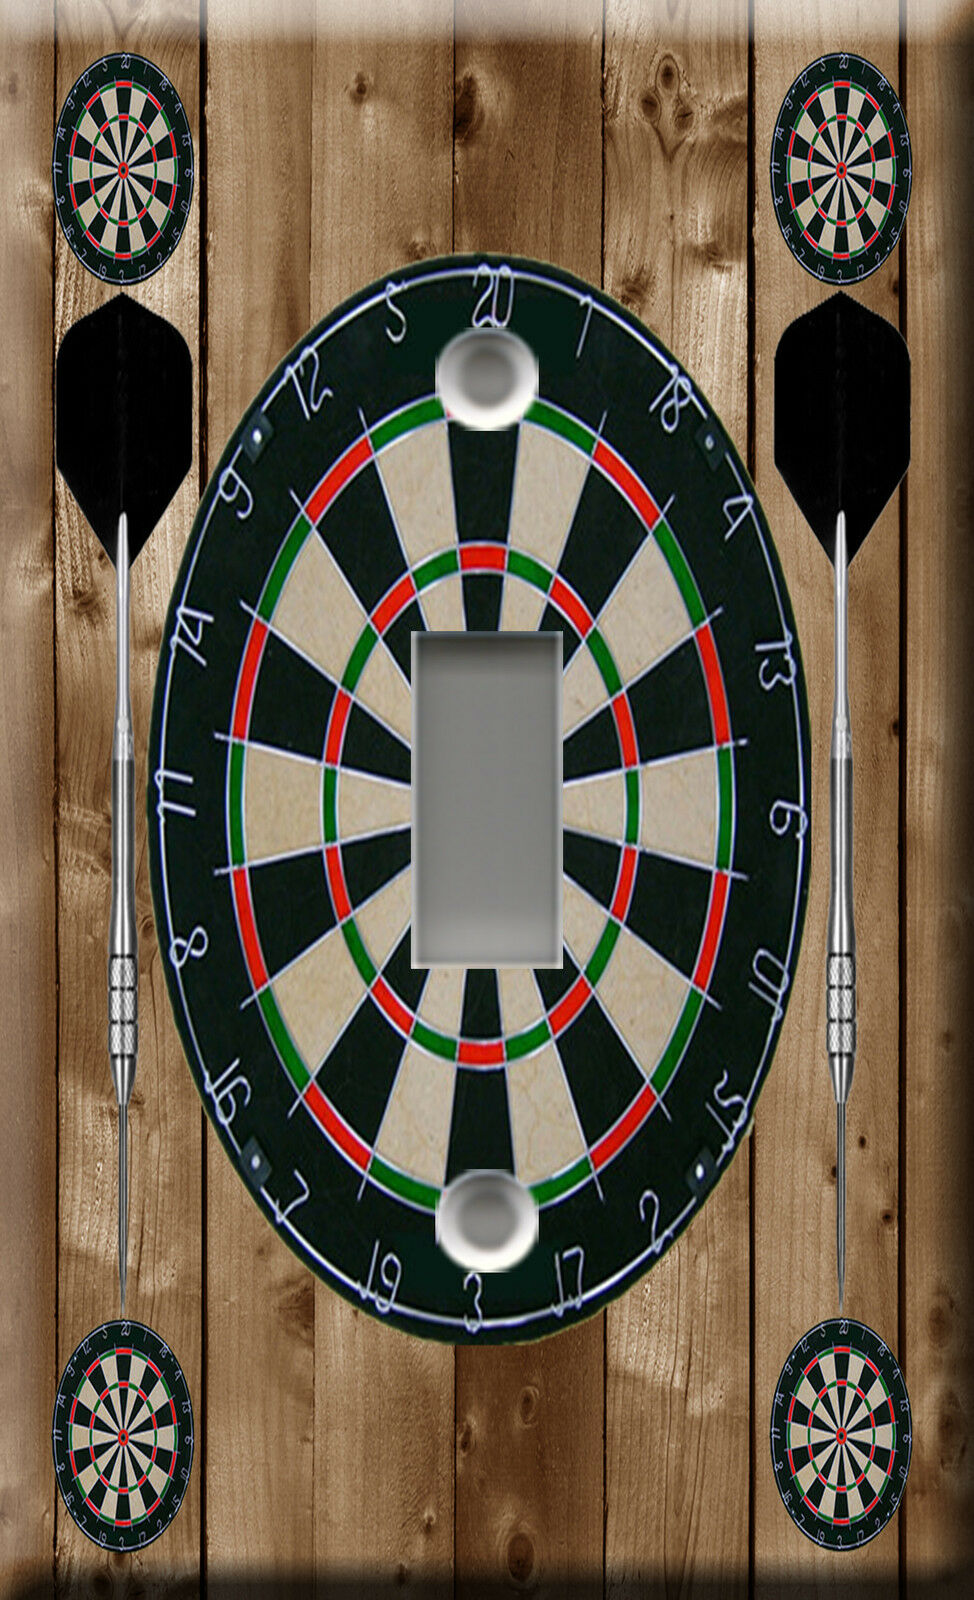 Light Switch Plate Cover Flechette competition Dart game sports bar brown